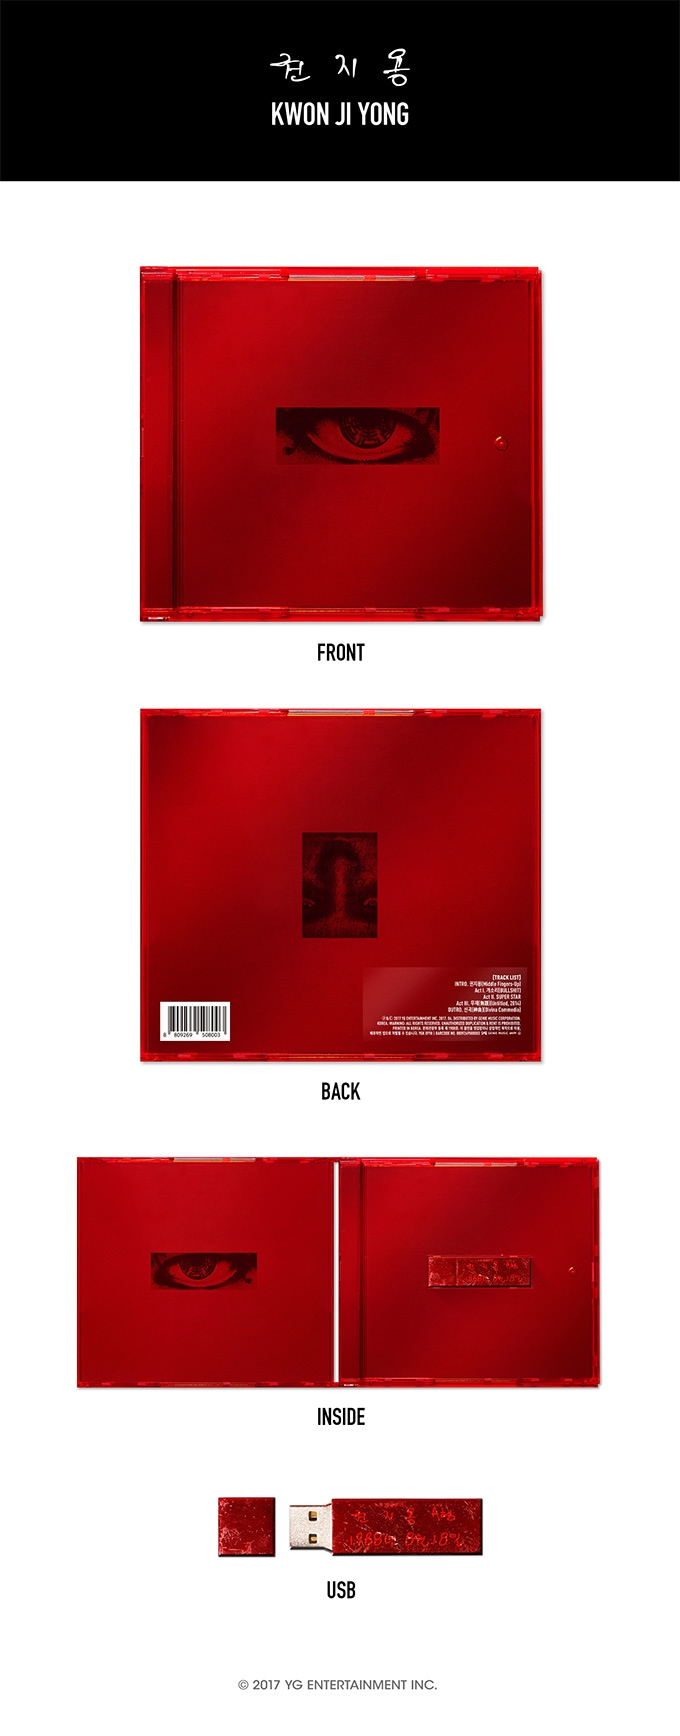 【BIGBANG】ビックバン G-DRAGON [KWON JI YONG] MIni Album